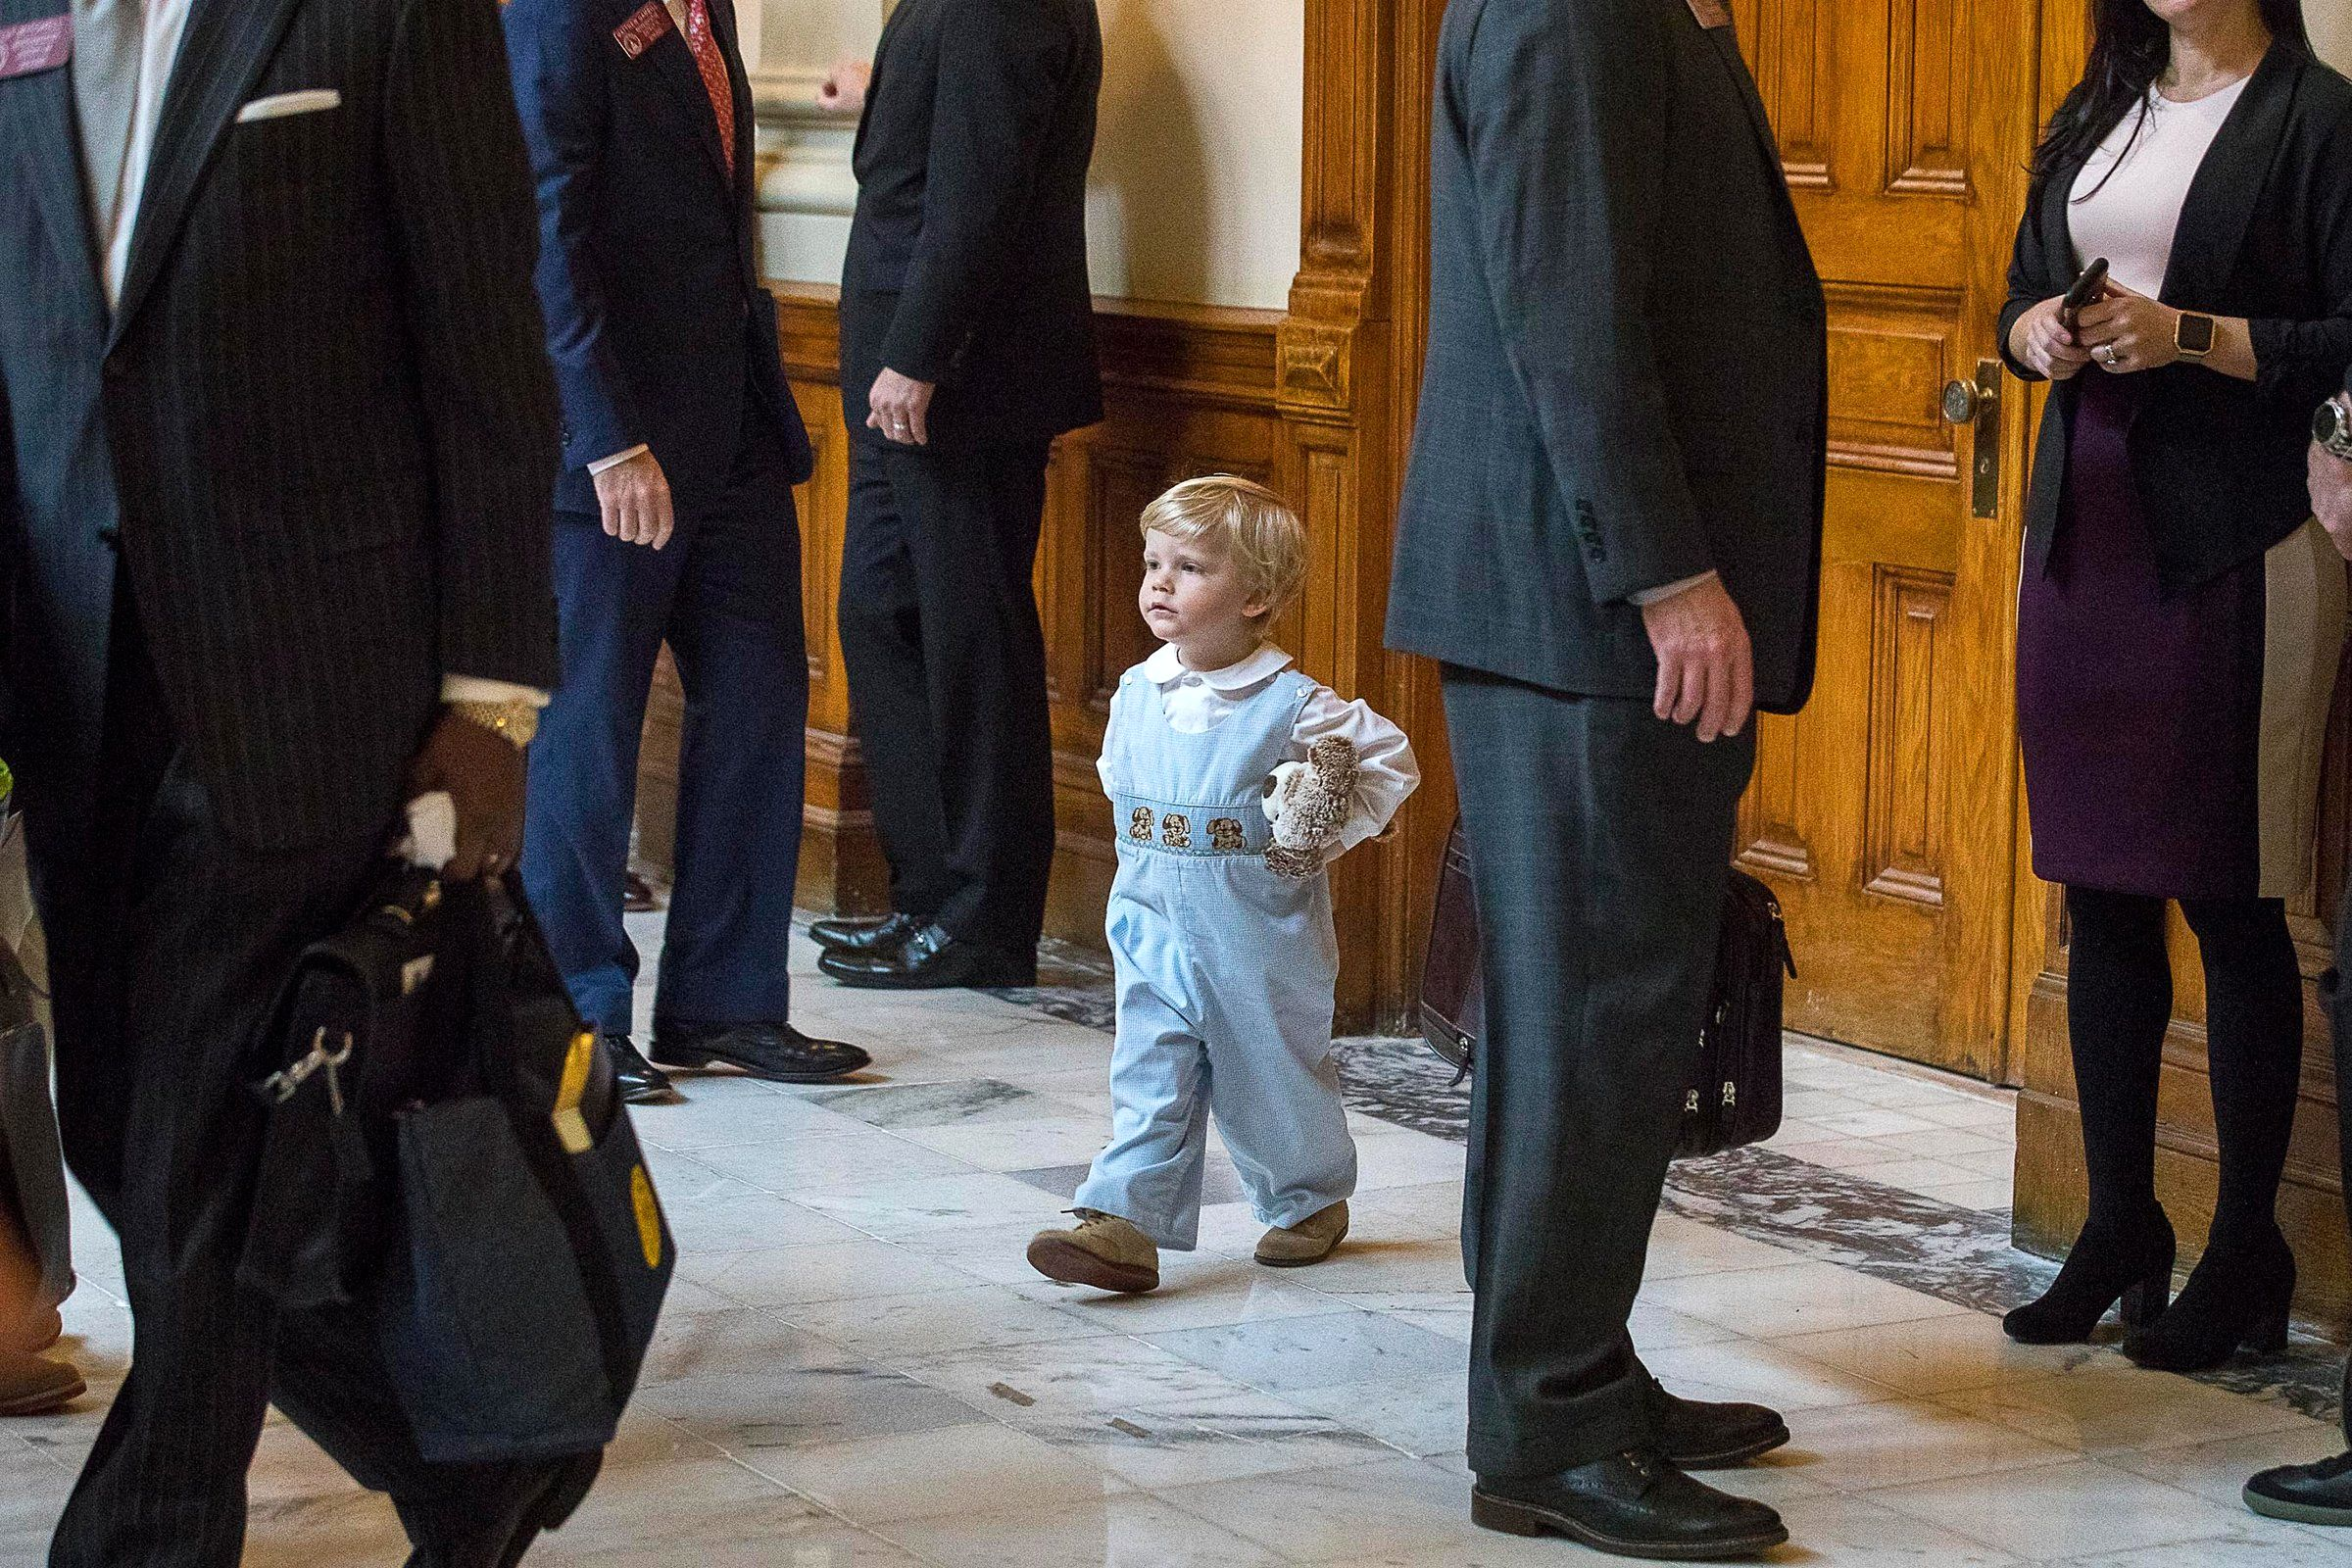 Two-year-old James Gambill of Cartersville navigates his way through Georgia lawmakers as he waits for his father, Rep. Matthew Gambill, a Republican, to be sworn in during the first session at the State Capitol building in Atlanta on Jan. 14.